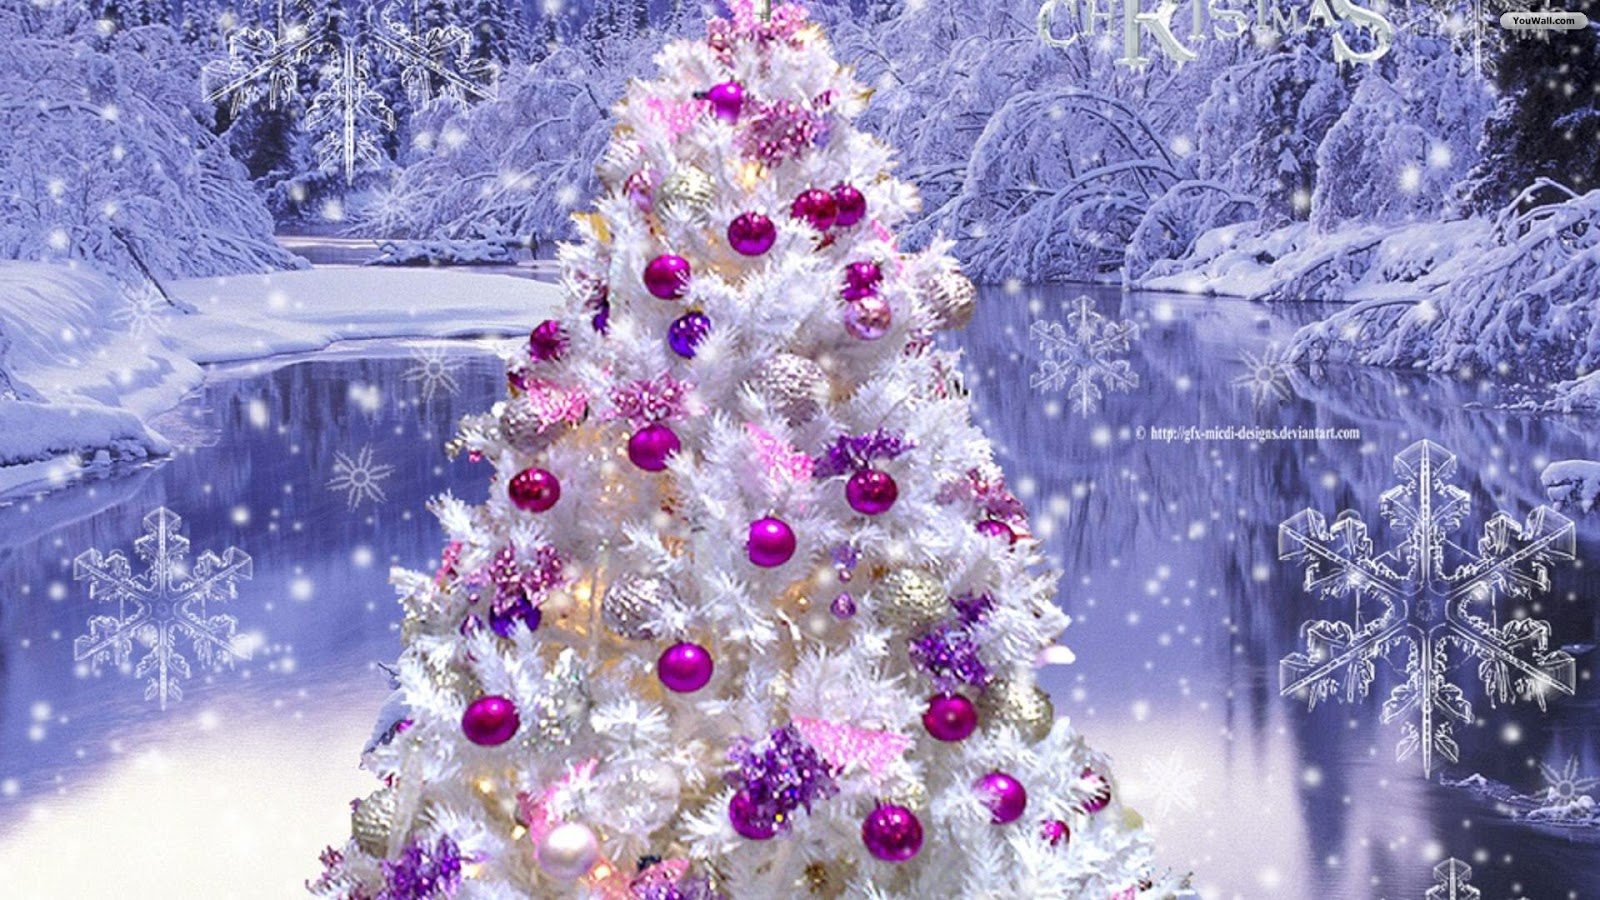 wallpapers - hd desktop wallpapers free online: amazing christmas